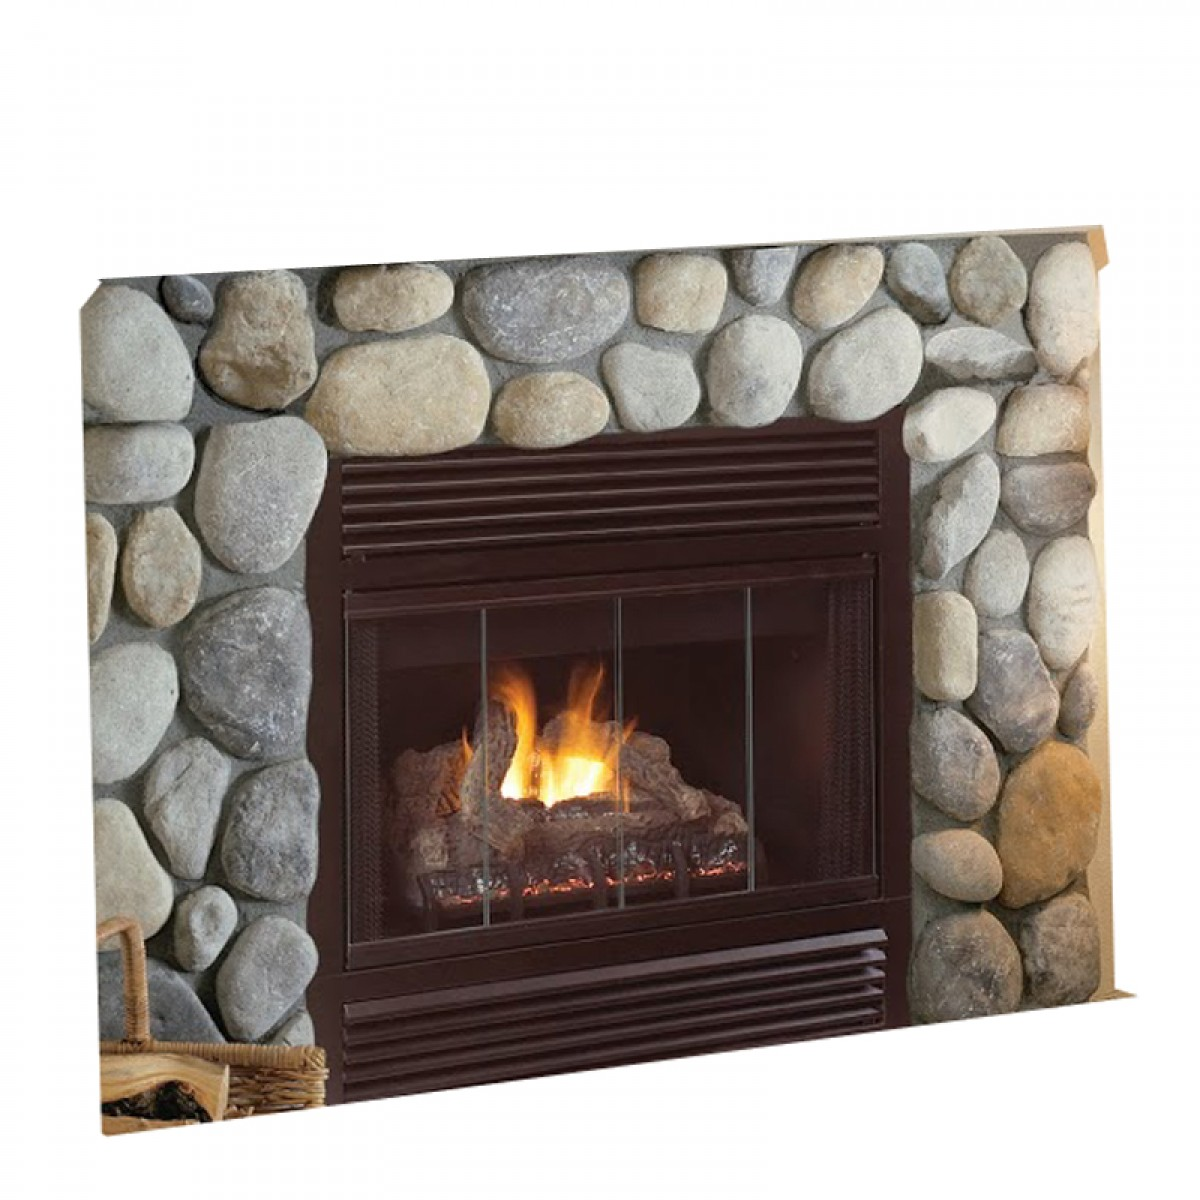 insert vent b fireplace series legend deluxe valor logs products